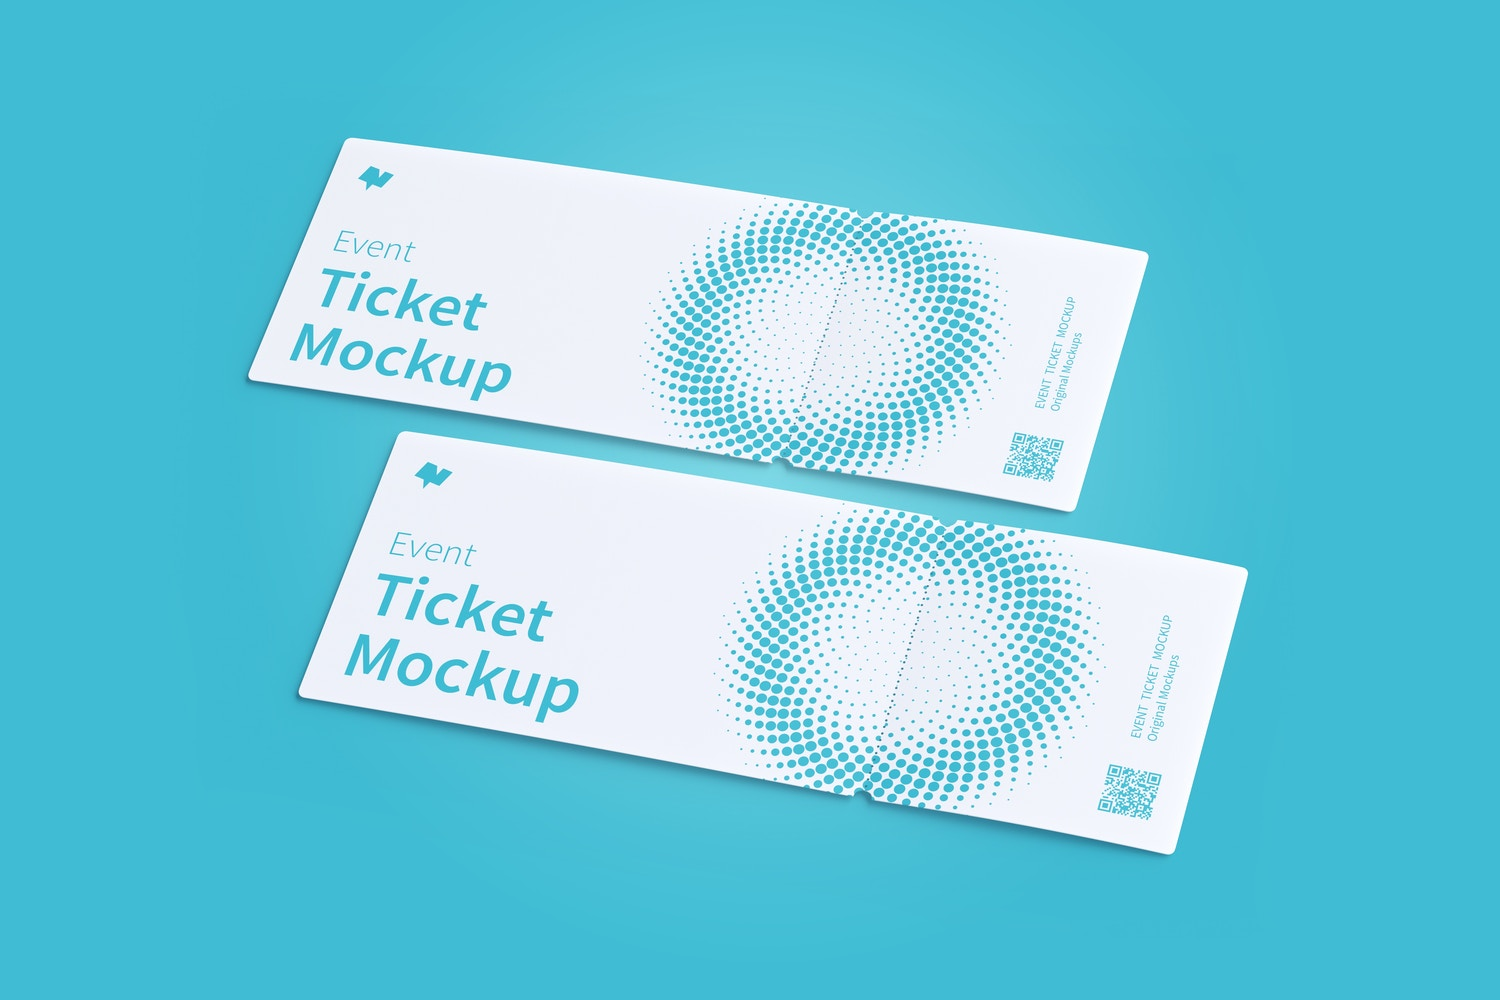 Event Tickets Mockup 01